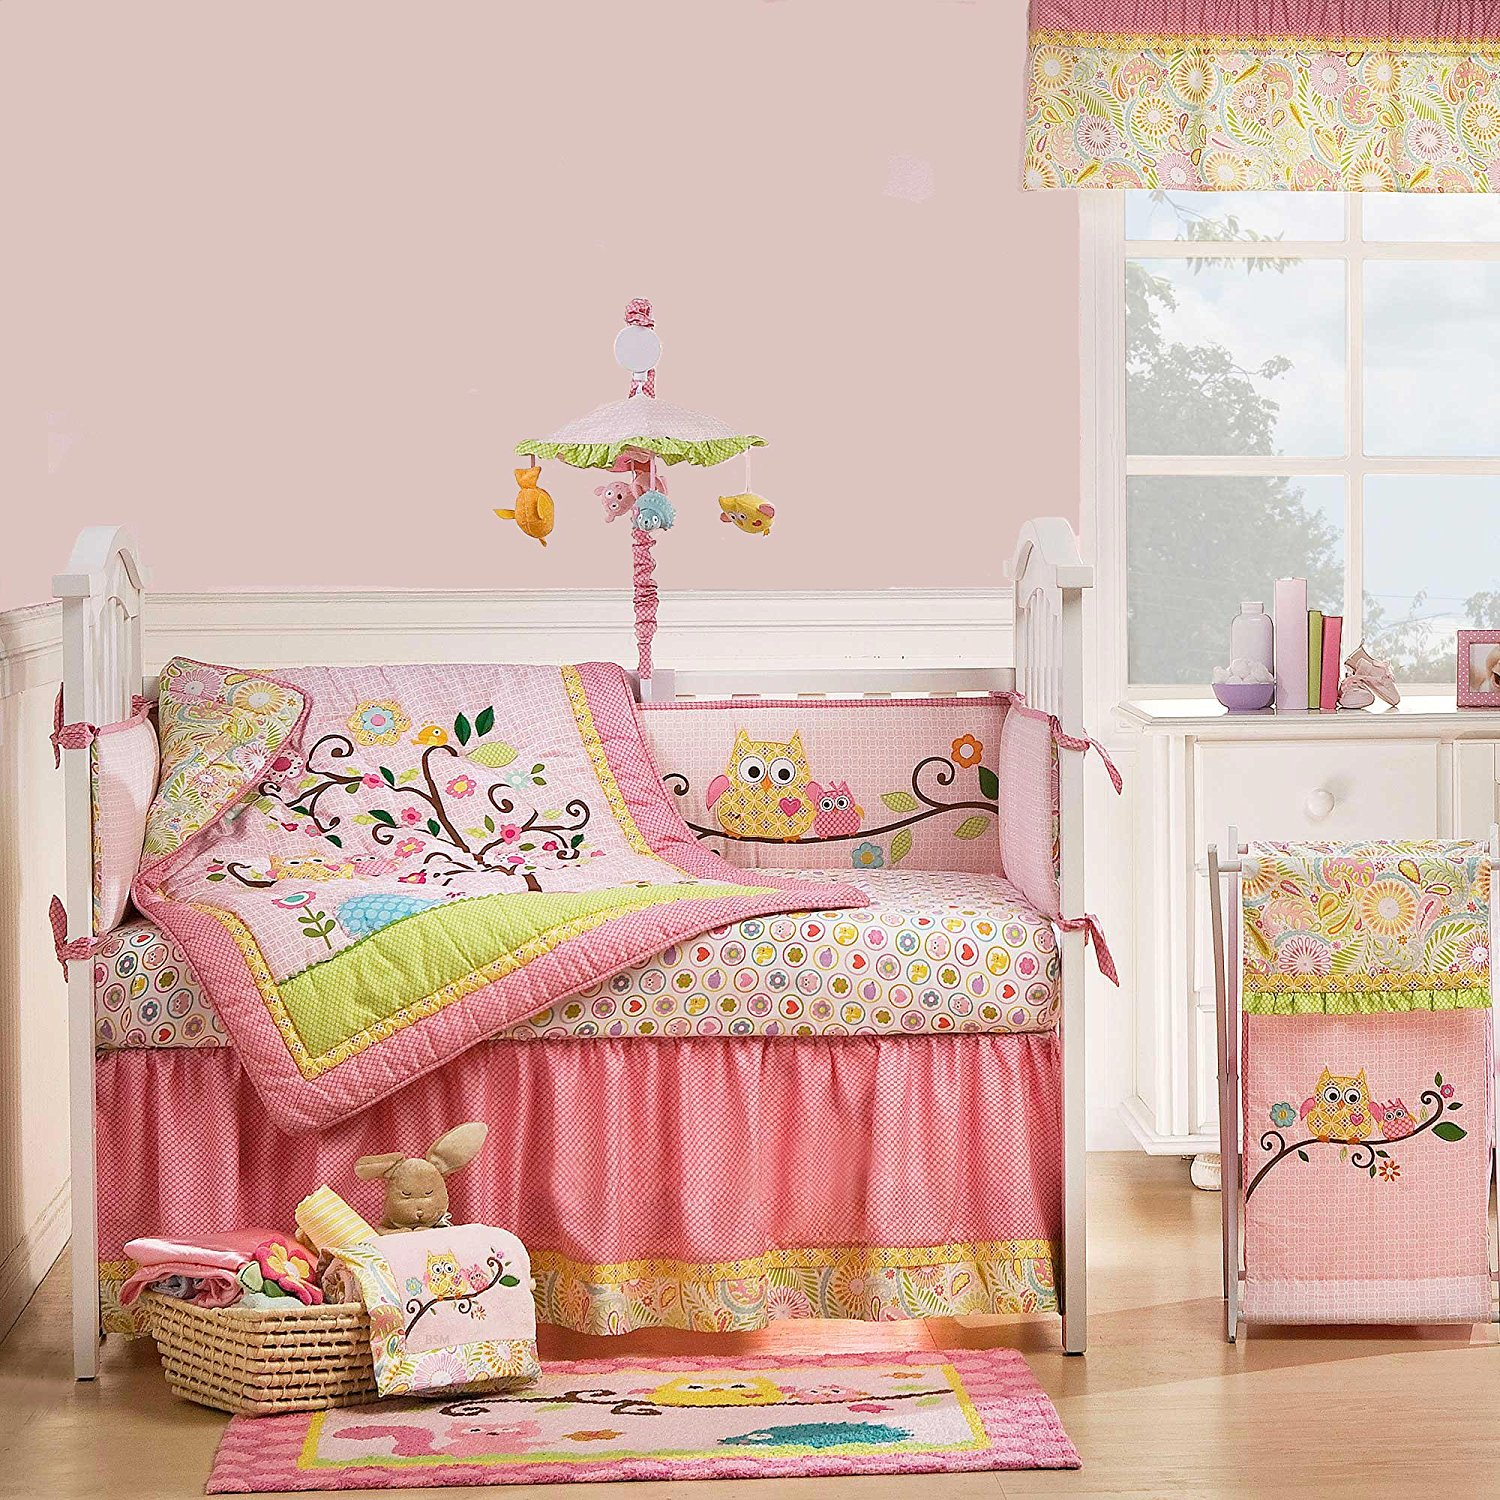 Image of: Owl Baby Quilt Pink